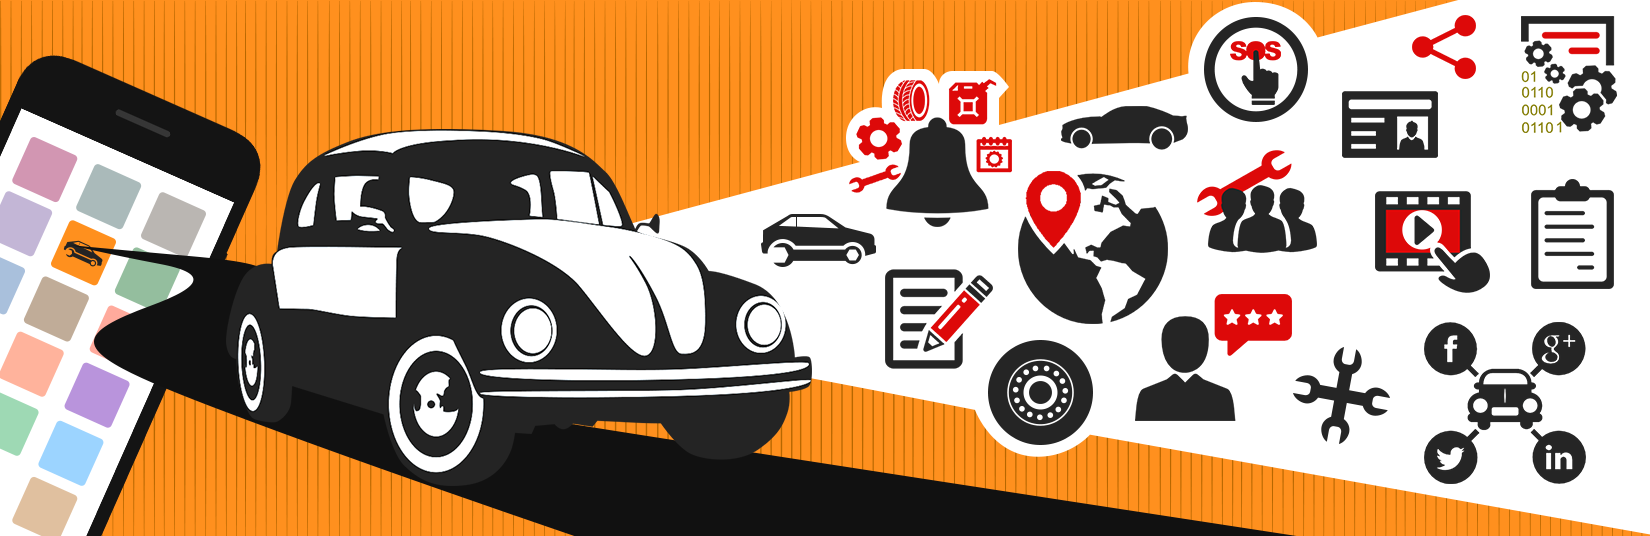 Automobile Car App Development Company For Android Amp Ios